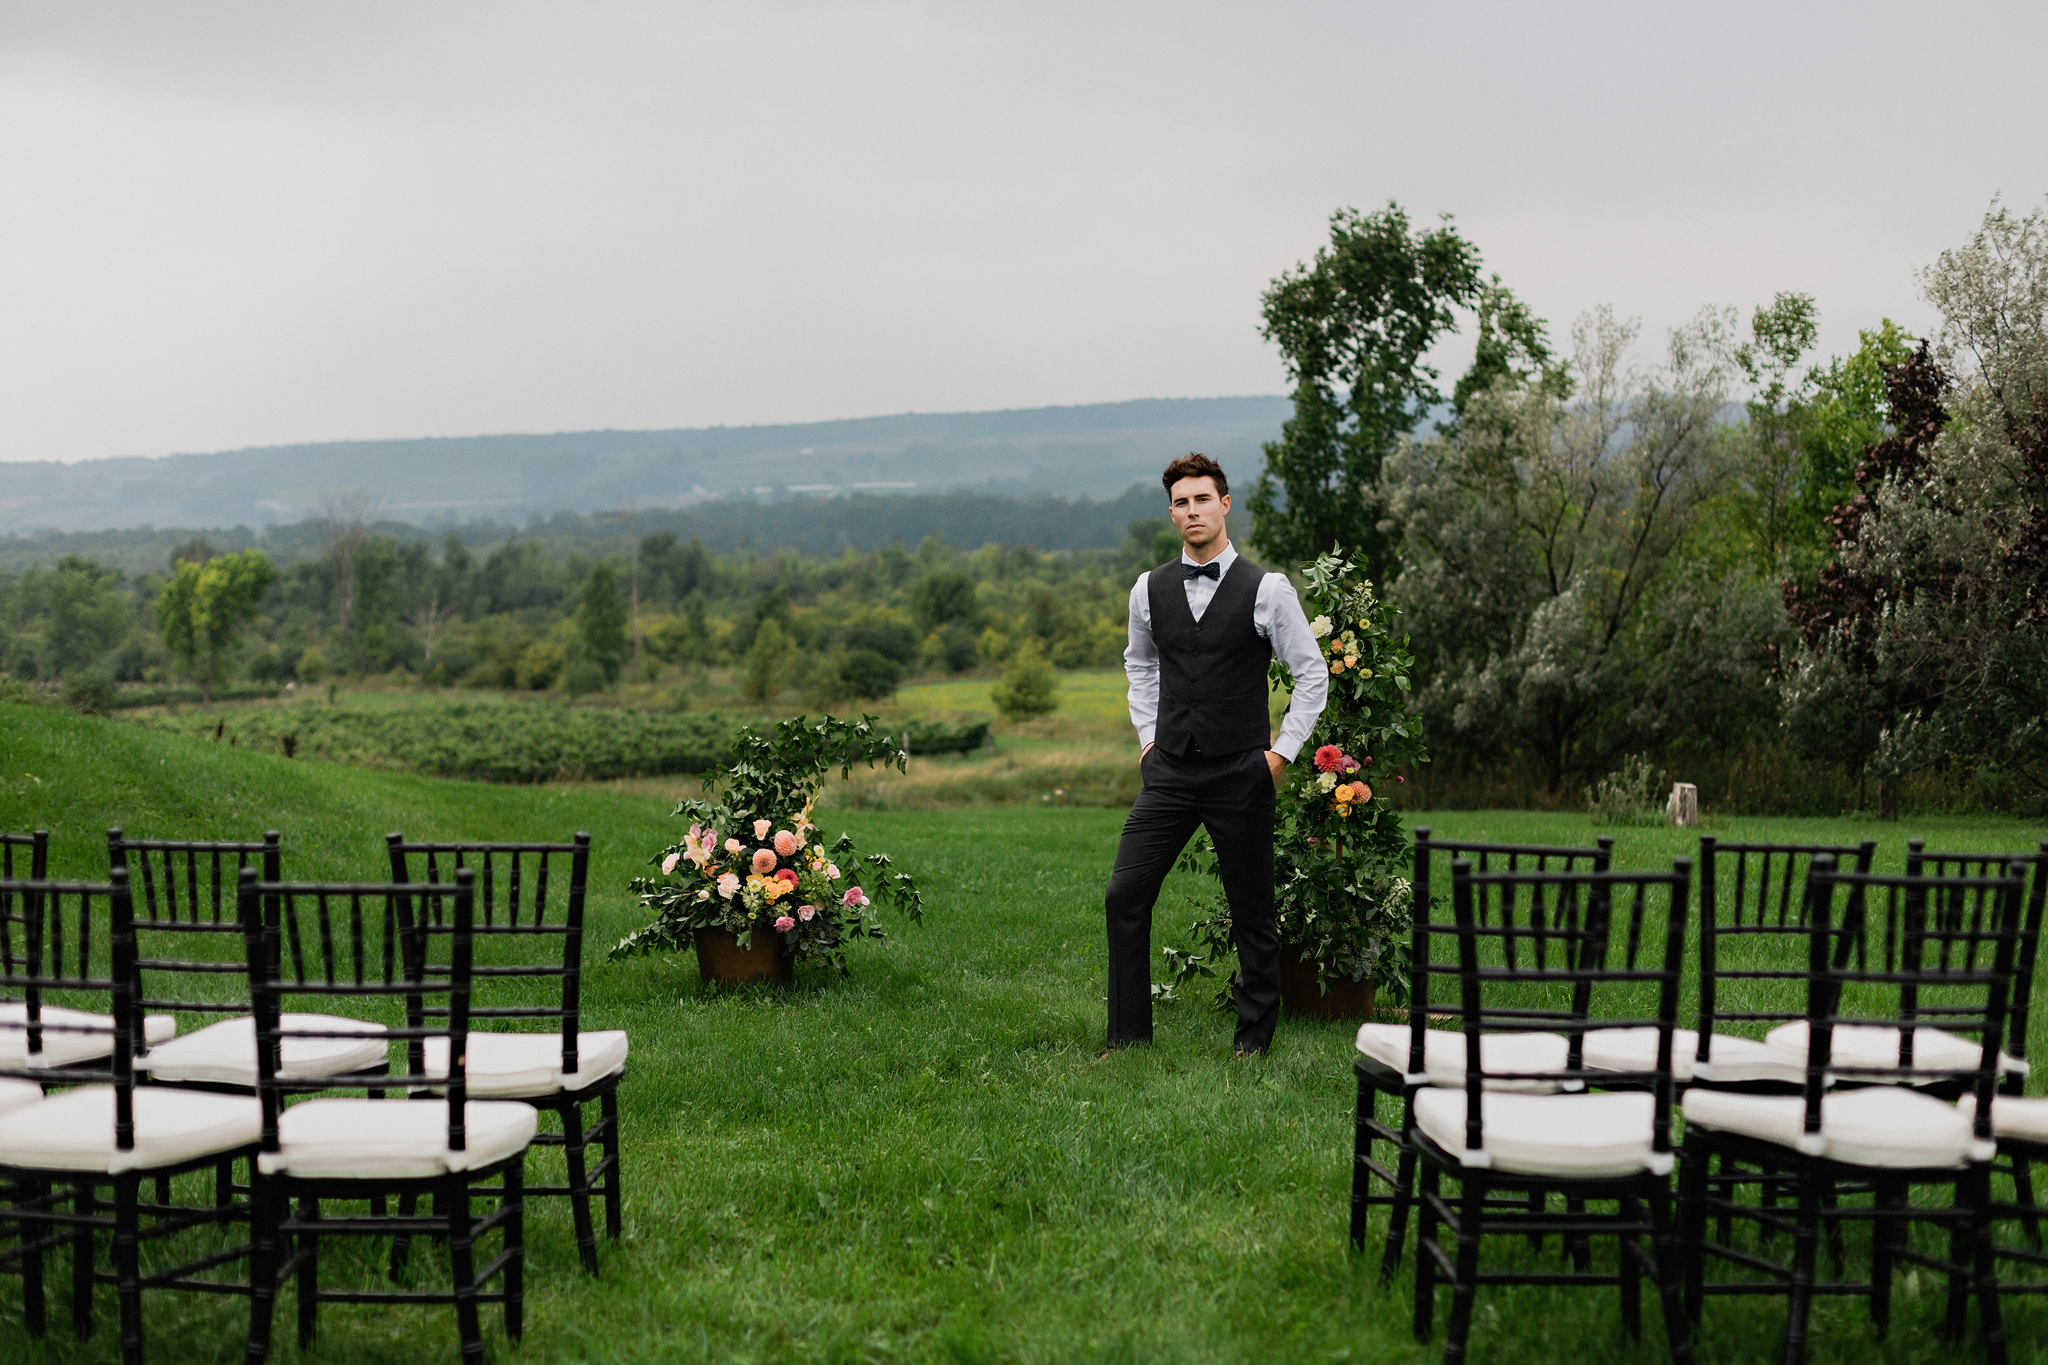 Groom looking dapper in a vest and slacks with sweeping landscap